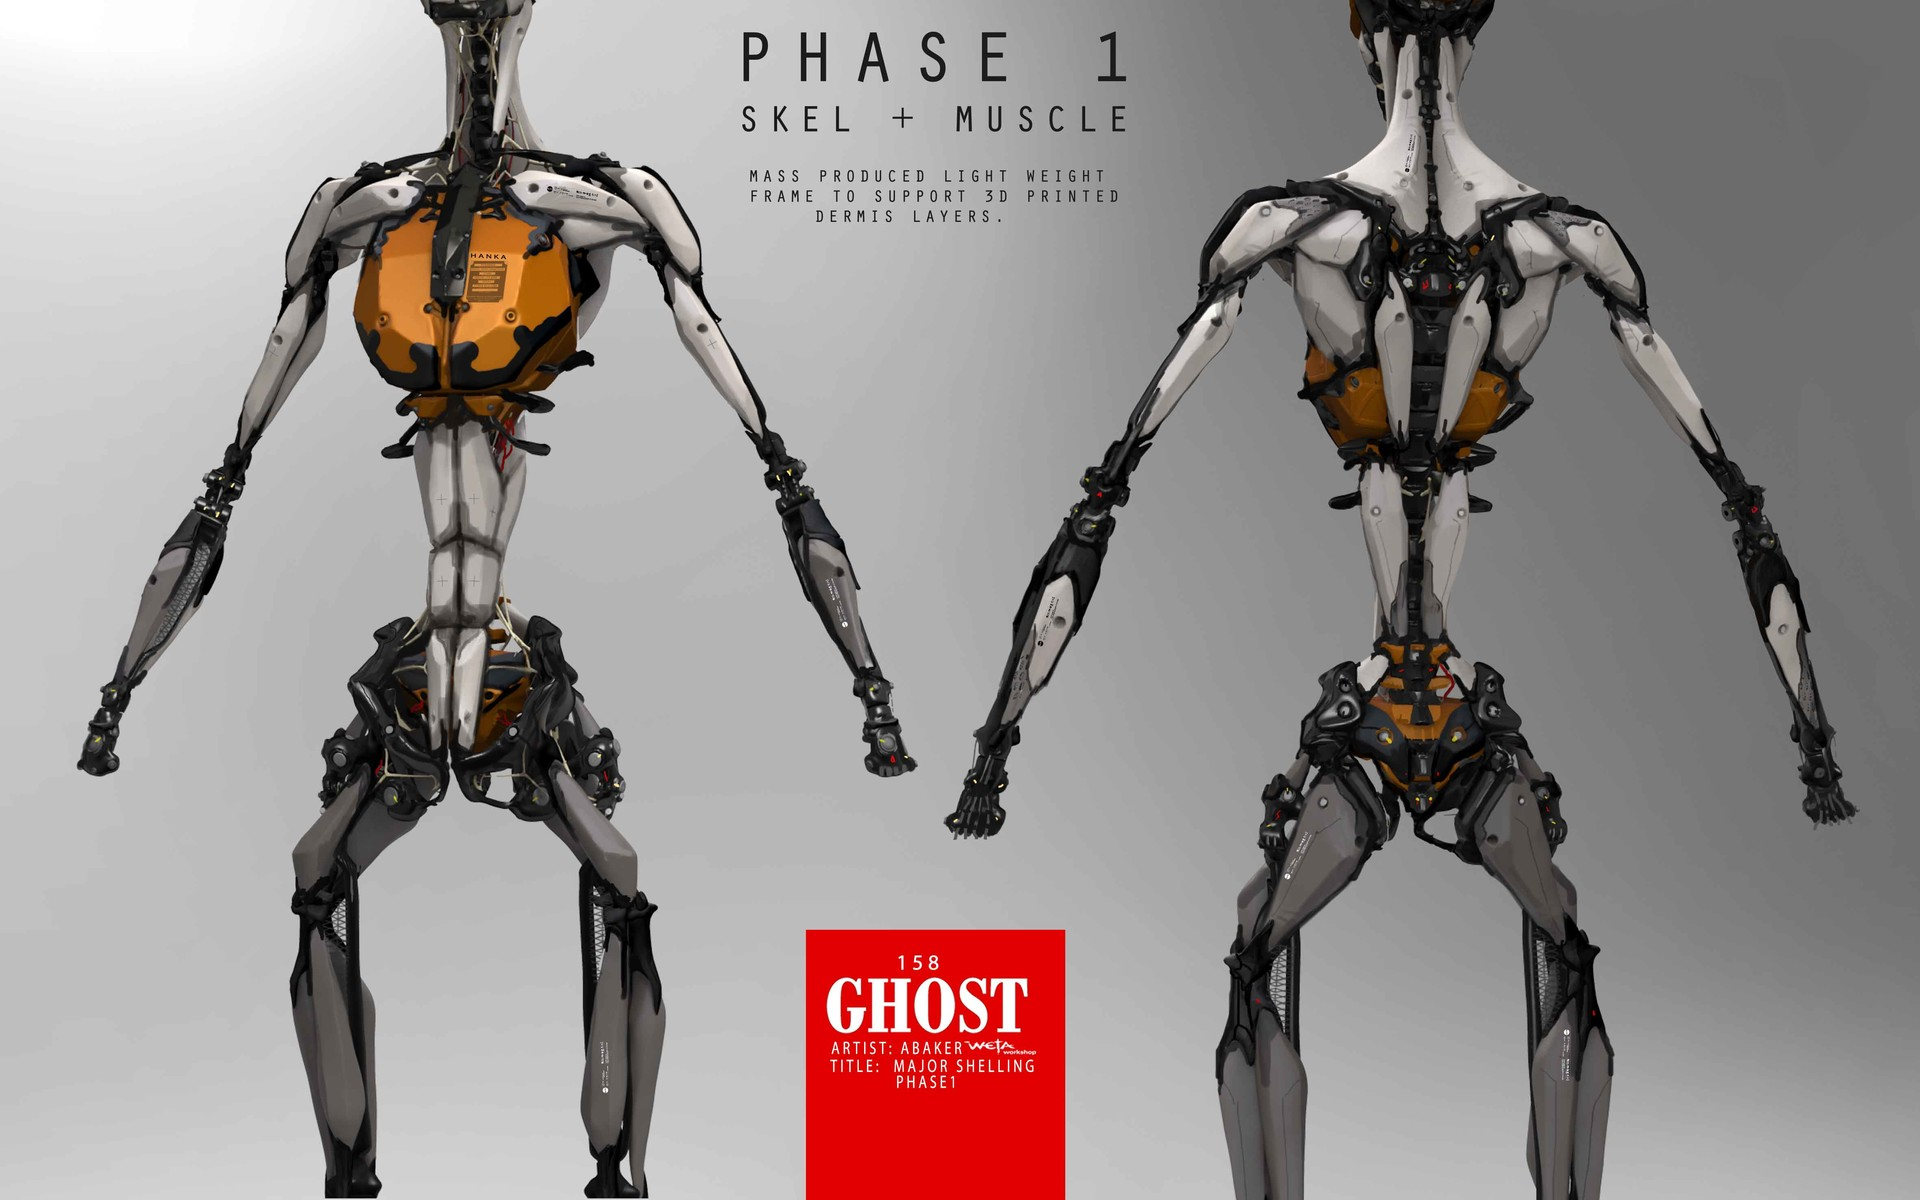 Weta workshop design studio 0158 gits shelling p1 ajb